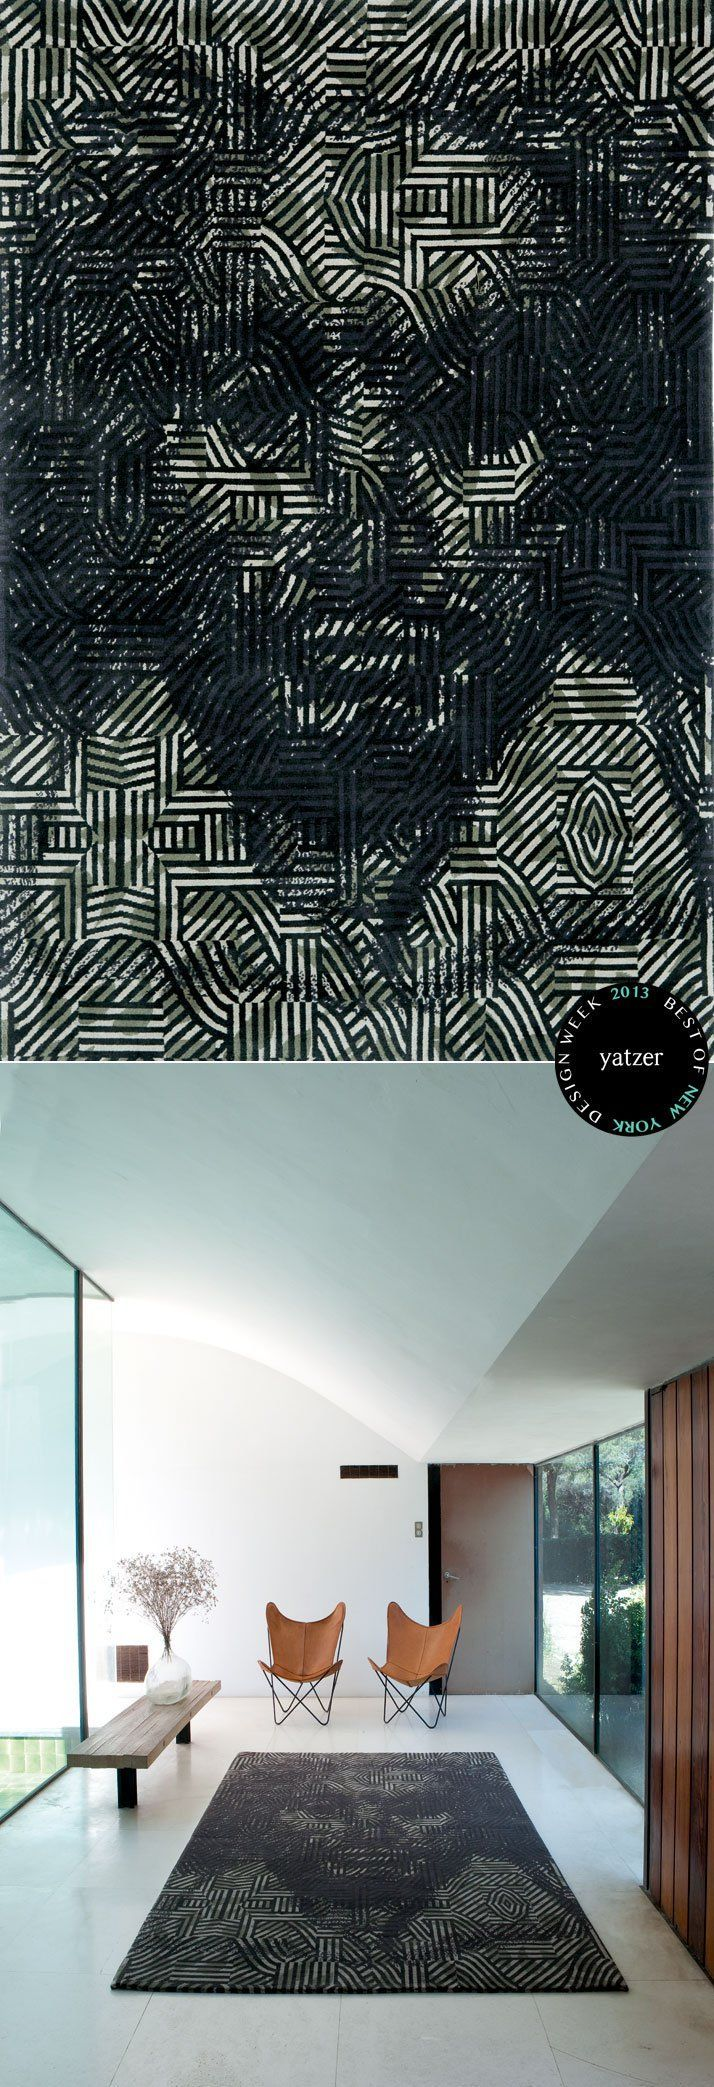 14 best office images on Pinterest | Rugs, Carpet and Carpets